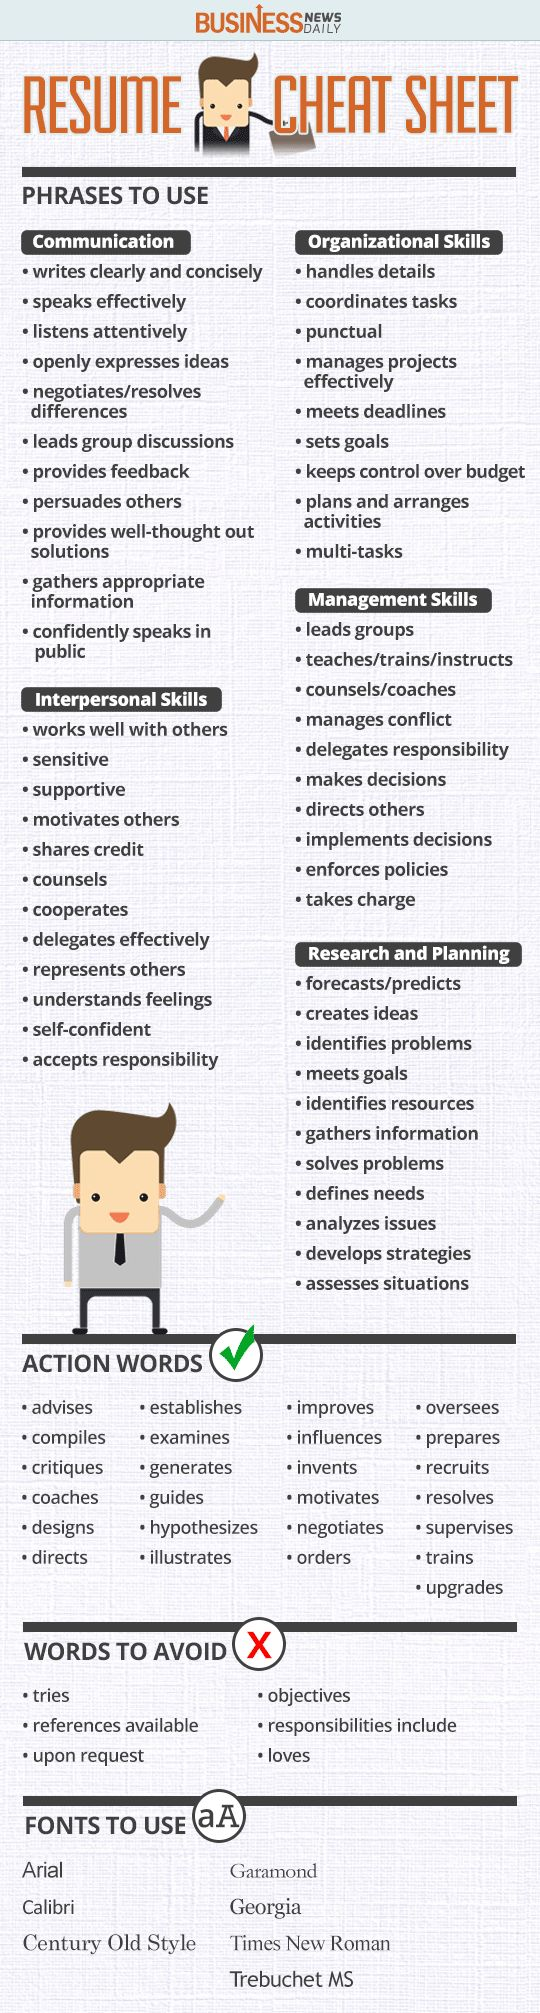 Opposenewapstandardsus  Marvelous  Ideas About Resume On Pinterest  Cv Format Resume Cv And  With Goodlooking Resume Cheat Sheet Infographic Andrews Almost Done With A Complete Unit On Employment Which With Enchanting Promotion Resume Also Winning Resume Examples In Addition Building A Resume For Free And Musicians Resume As Well As Word Templates For Resumes Additionally Formal Resume Template From Pinterestcom With Opposenewapstandardsus  Goodlooking  Ideas About Resume On Pinterest  Cv Format Resume Cv And  With Enchanting Resume Cheat Sheet Infographic Andrews Almost Done With A Complete Unit On Employment Which And Marvelous Promotion Resume Also Winning Resume Examples In Addition Building A Resume For Free From Pinterestcom